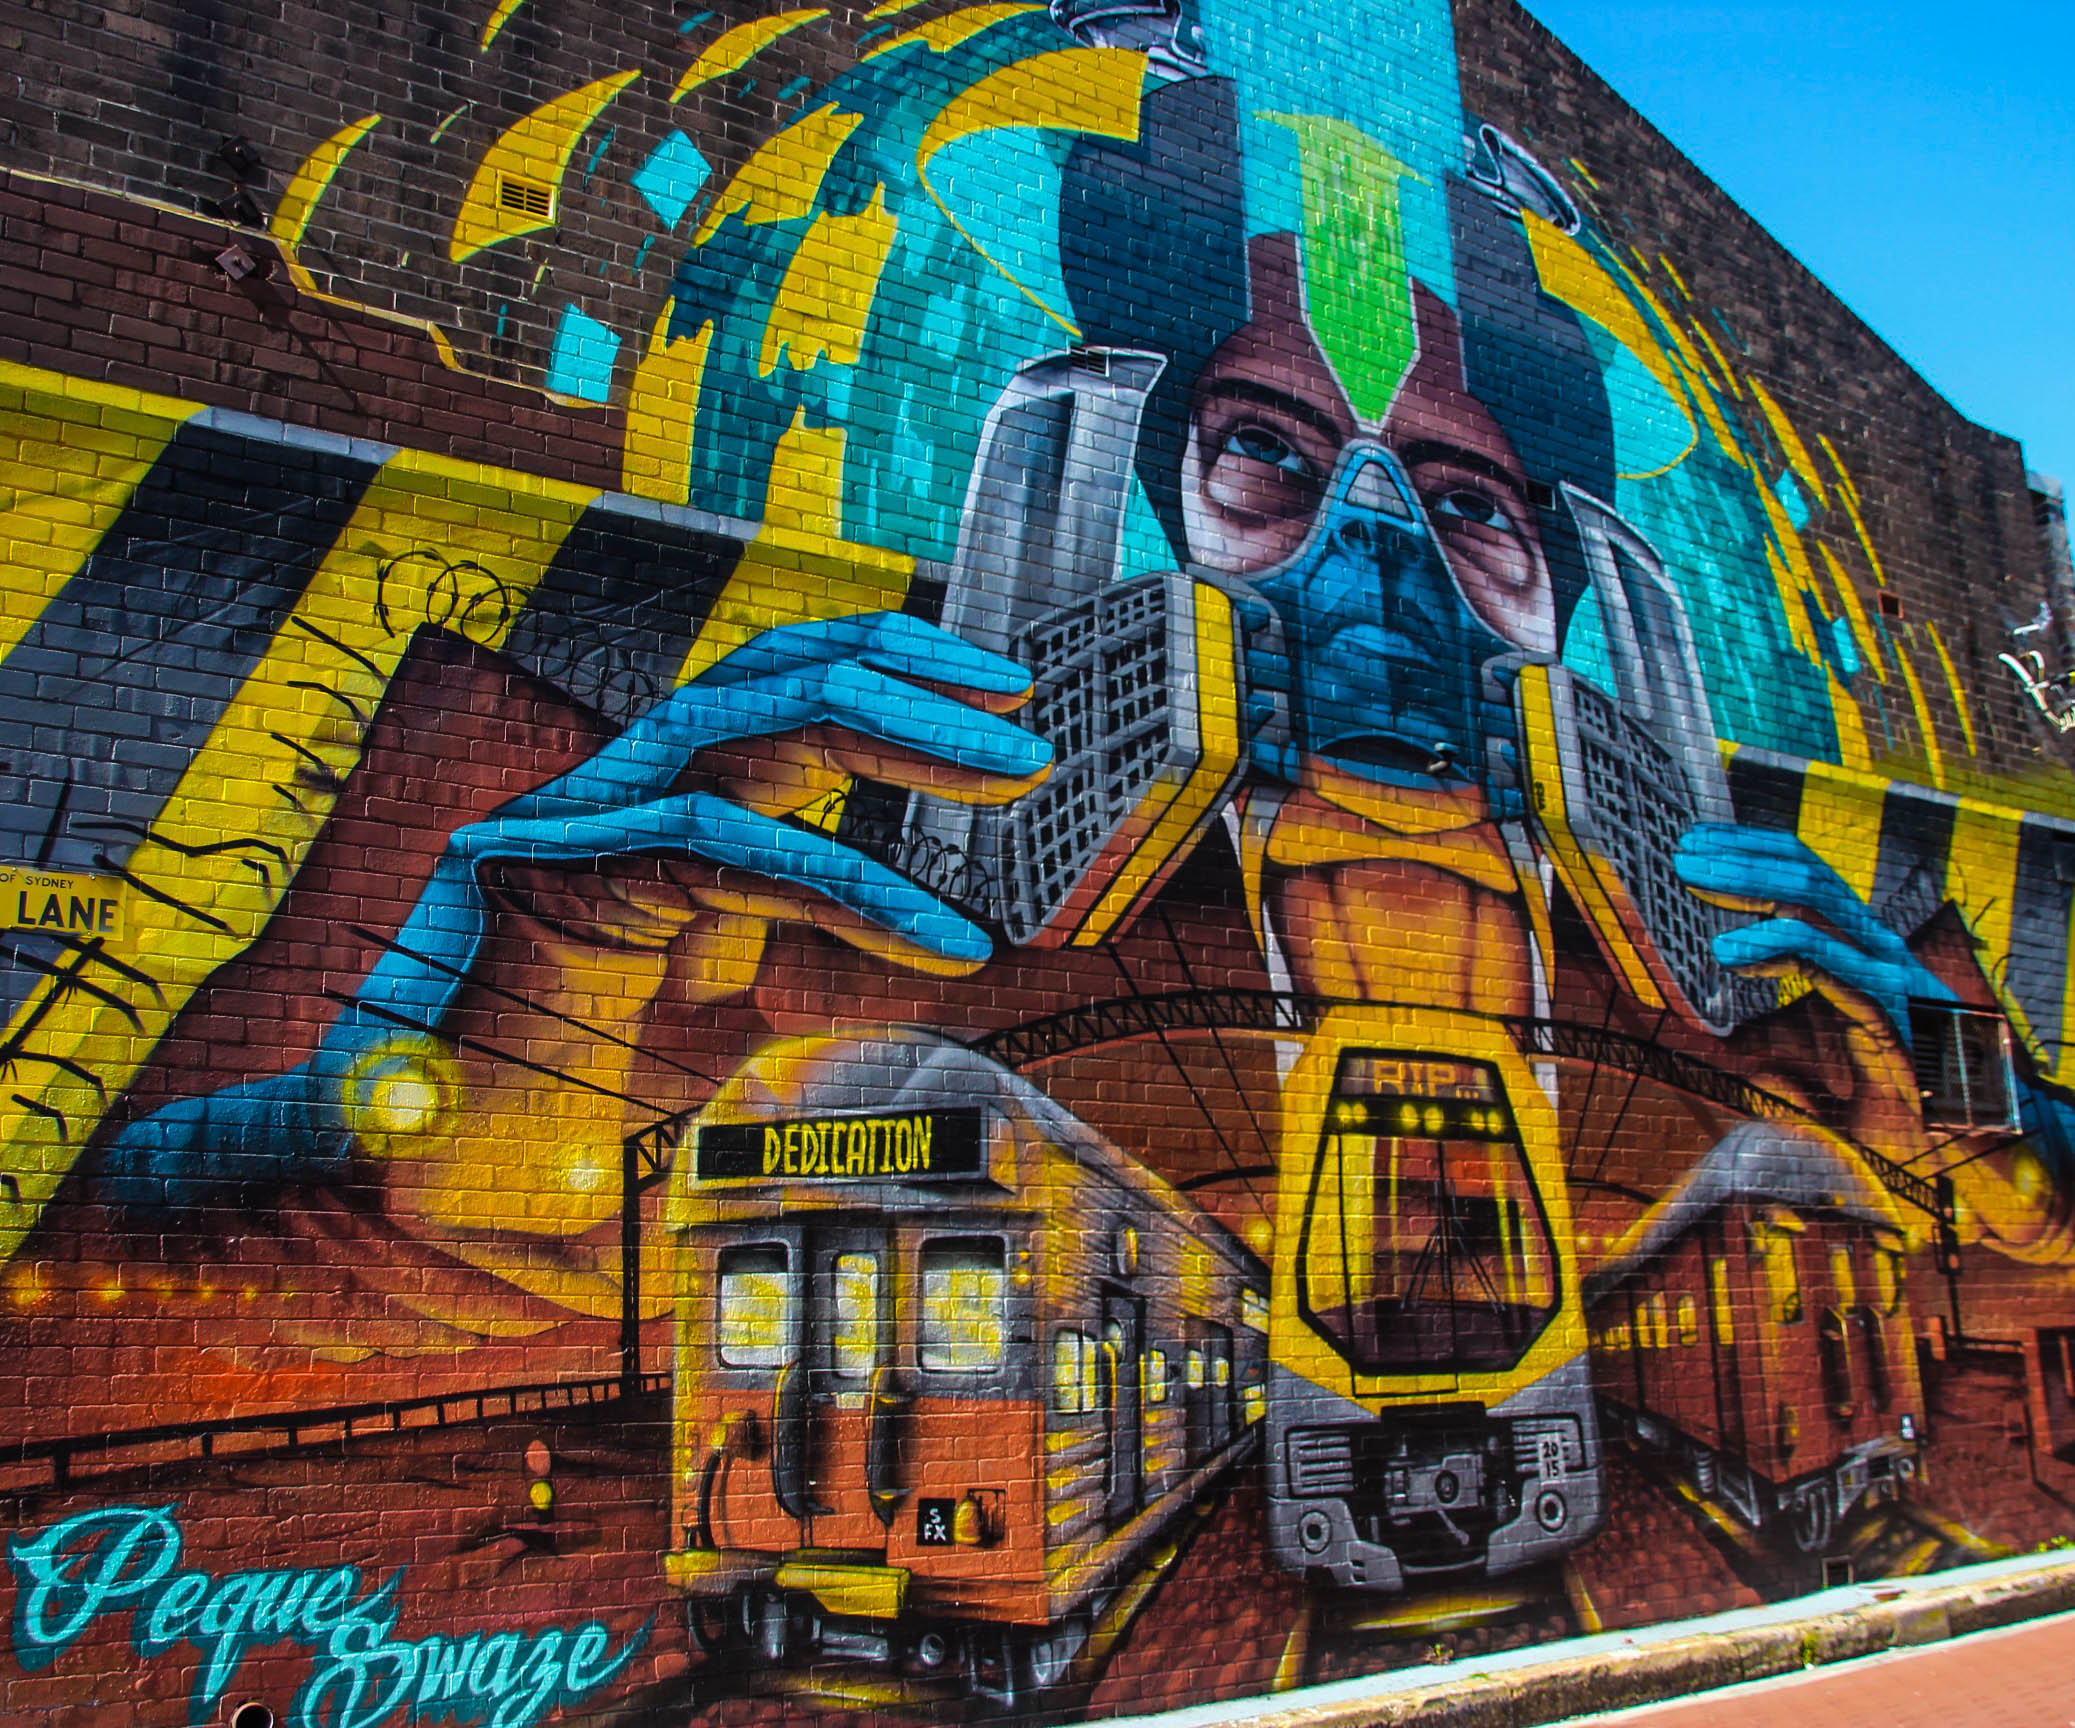 May Lane - St. Peters - Sydney, New South Wales